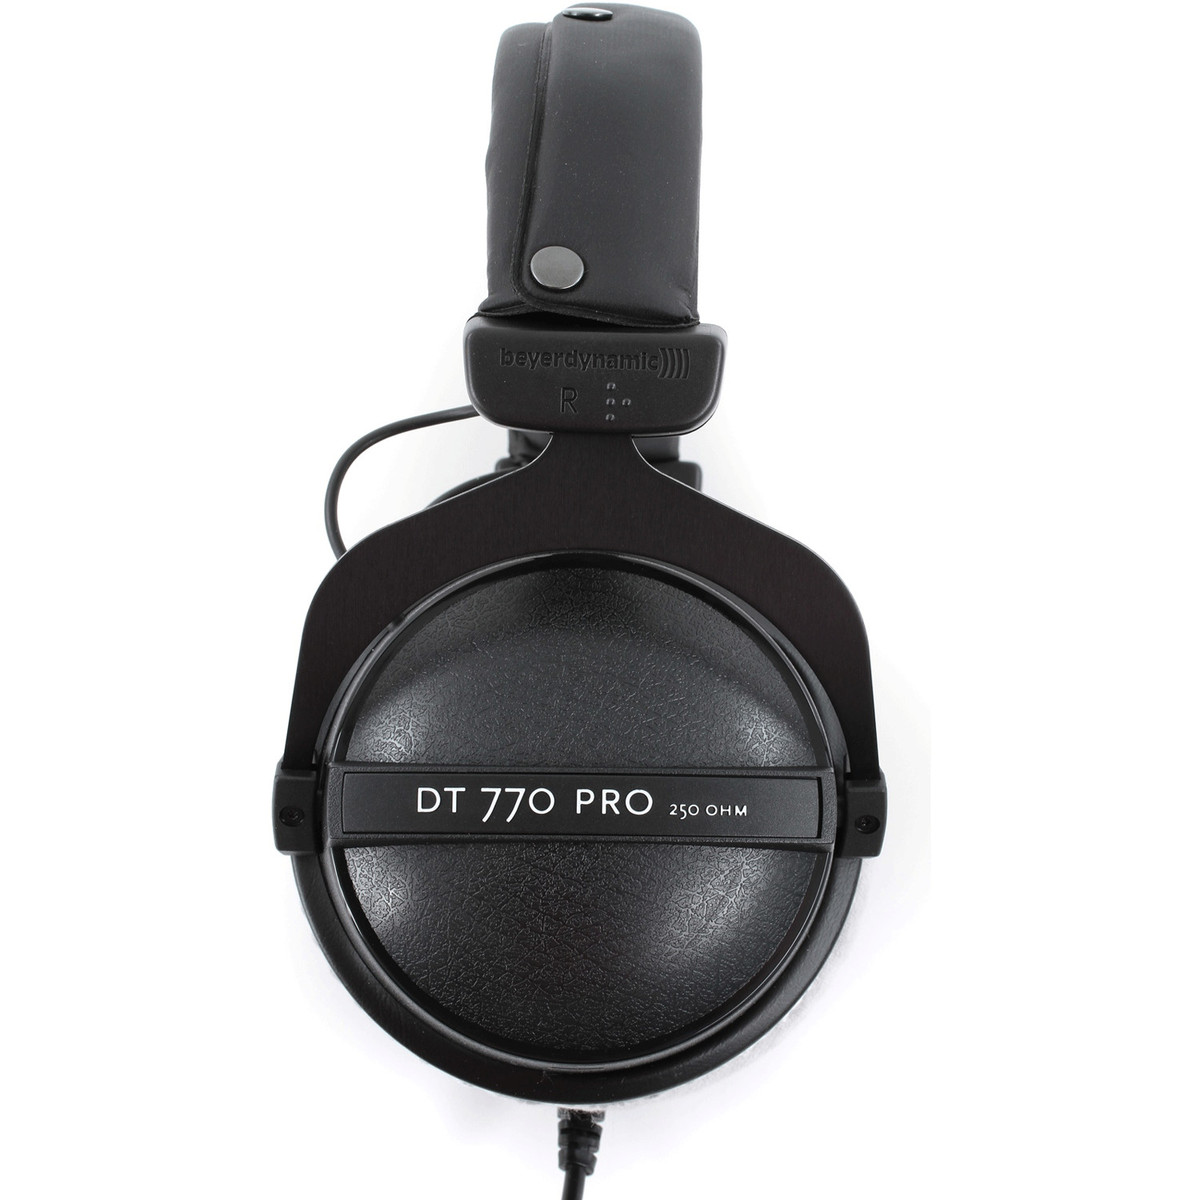 beyerdynamic dt 770 pro headphones 250 ohm at gear4music. Black Bedroom Furniture Sets. Home Design Ideas